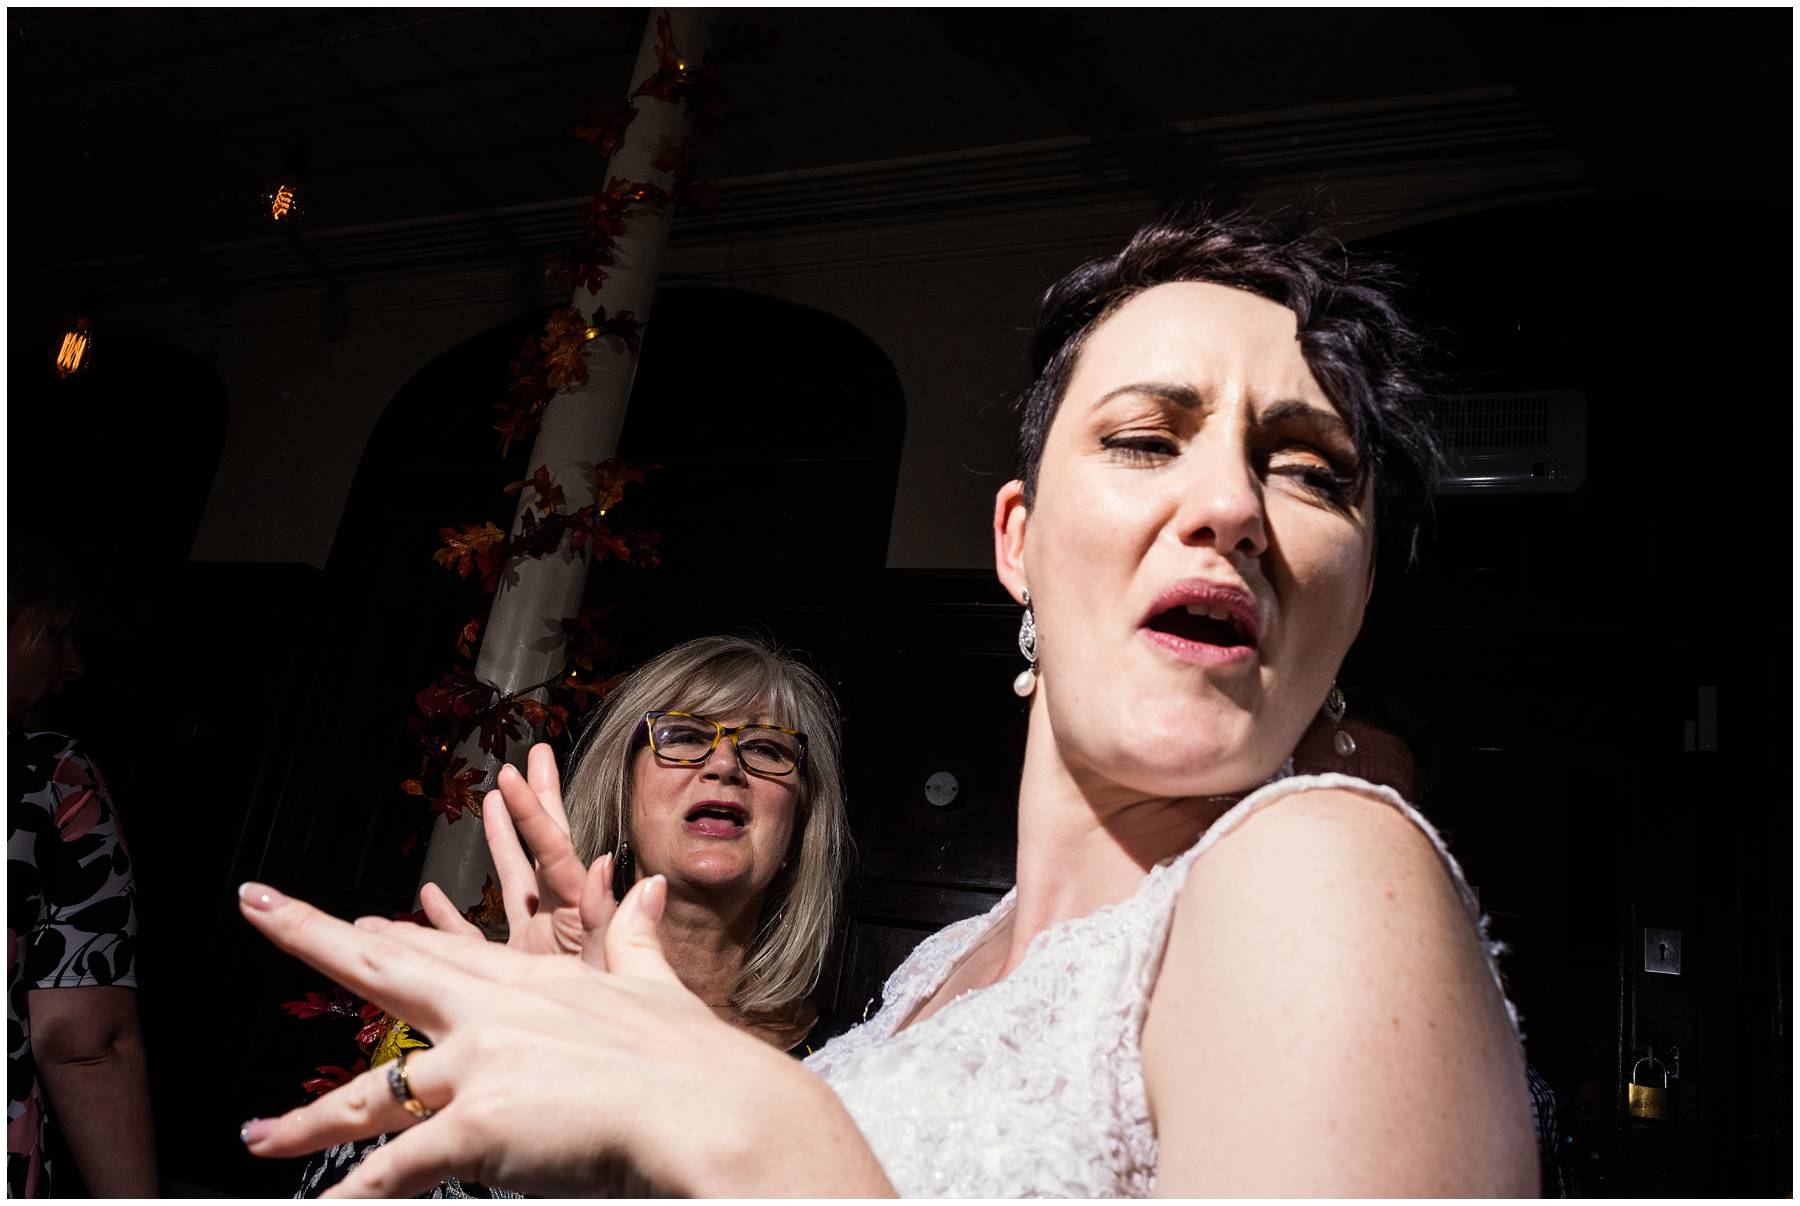 Reportage Wedding Photography at Prince Albert Pub, Camden